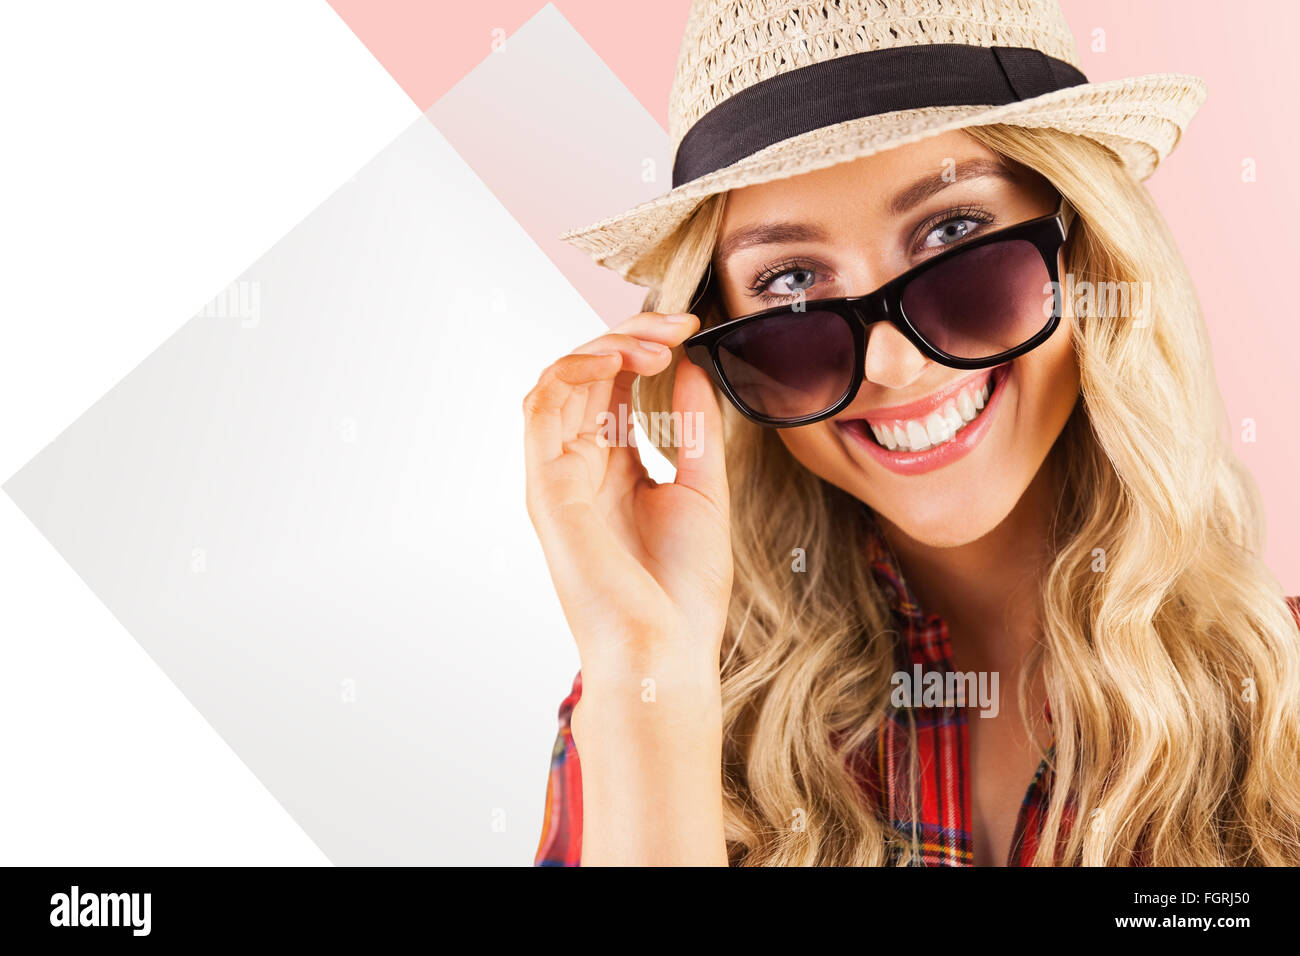 Composite image of gorgeous smiling blonde hipster posing with sunglasses Stock Photo